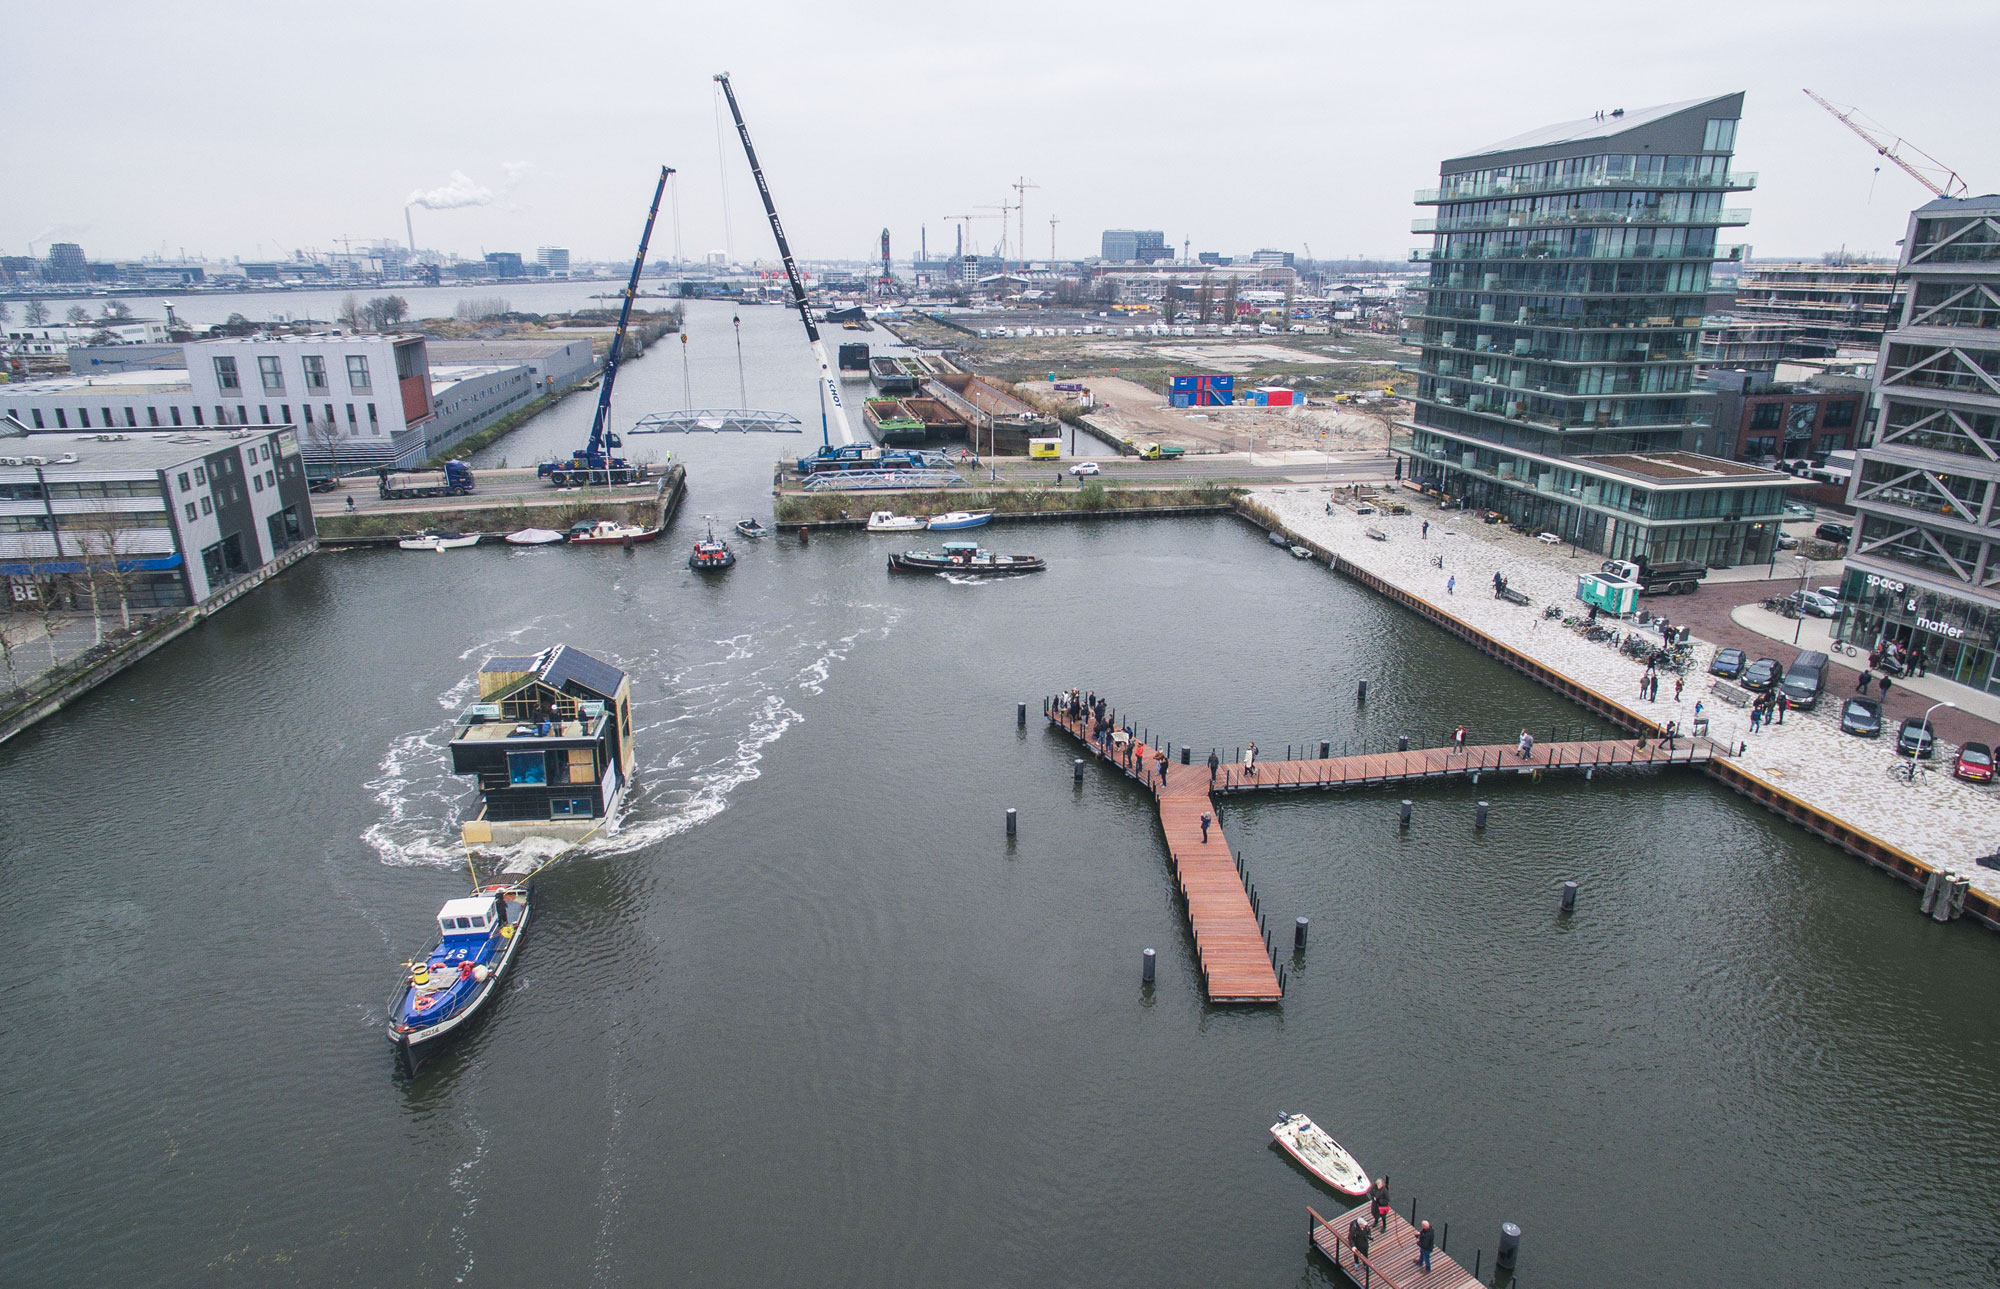 Residents have started moving in to what will be Europe's most sustainable floating community.